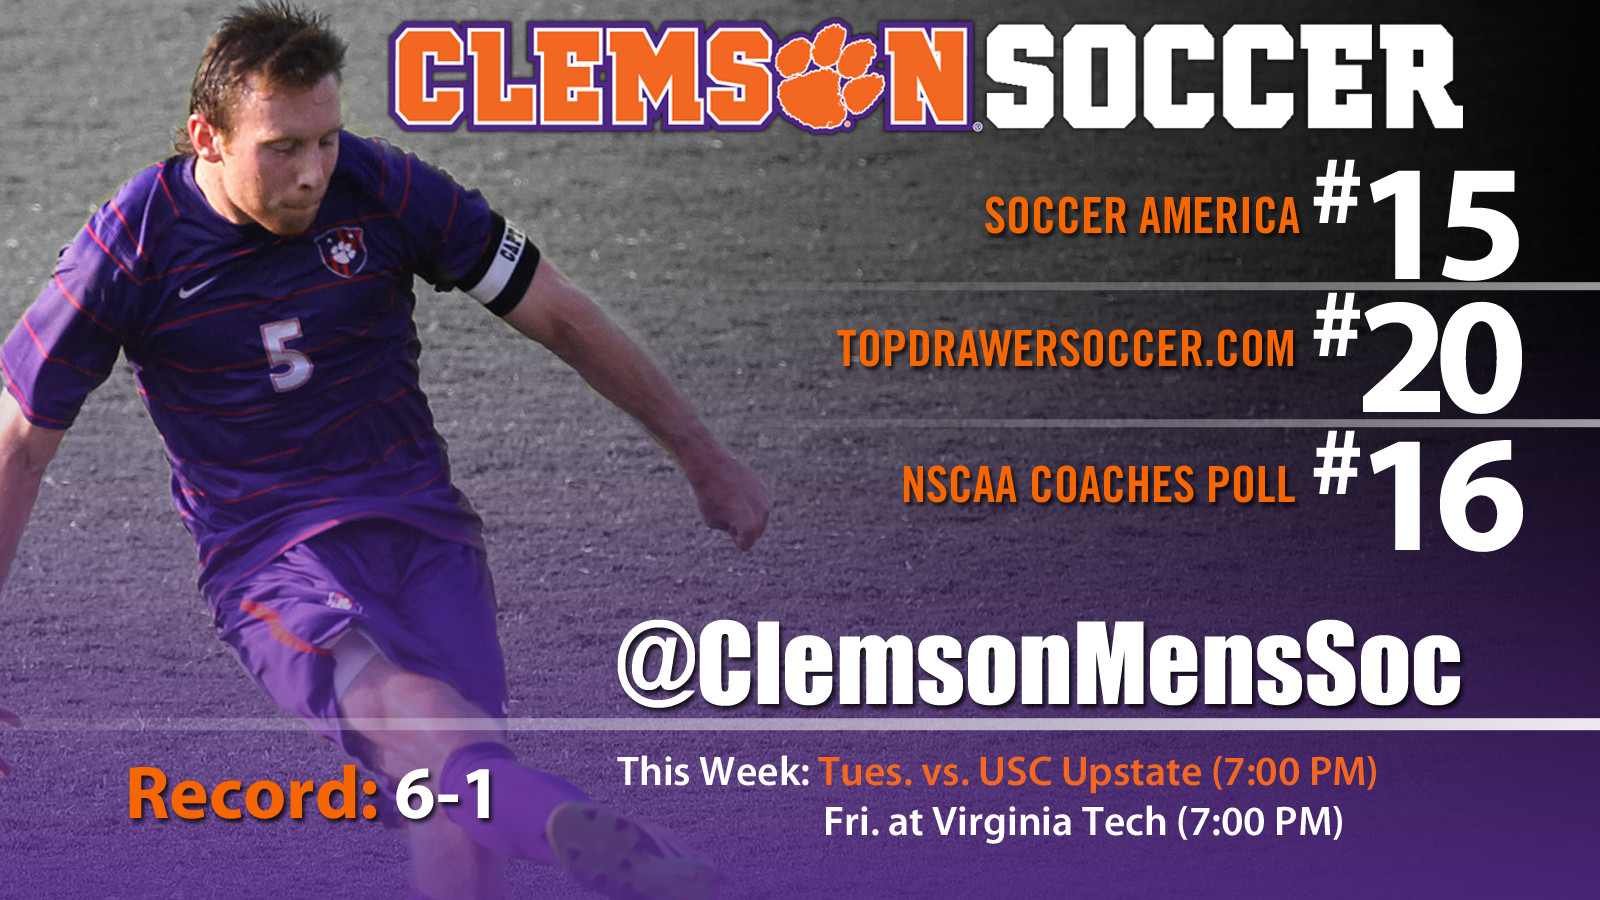 Clemson is Ranked 15th Nationally in Men?s Soccer